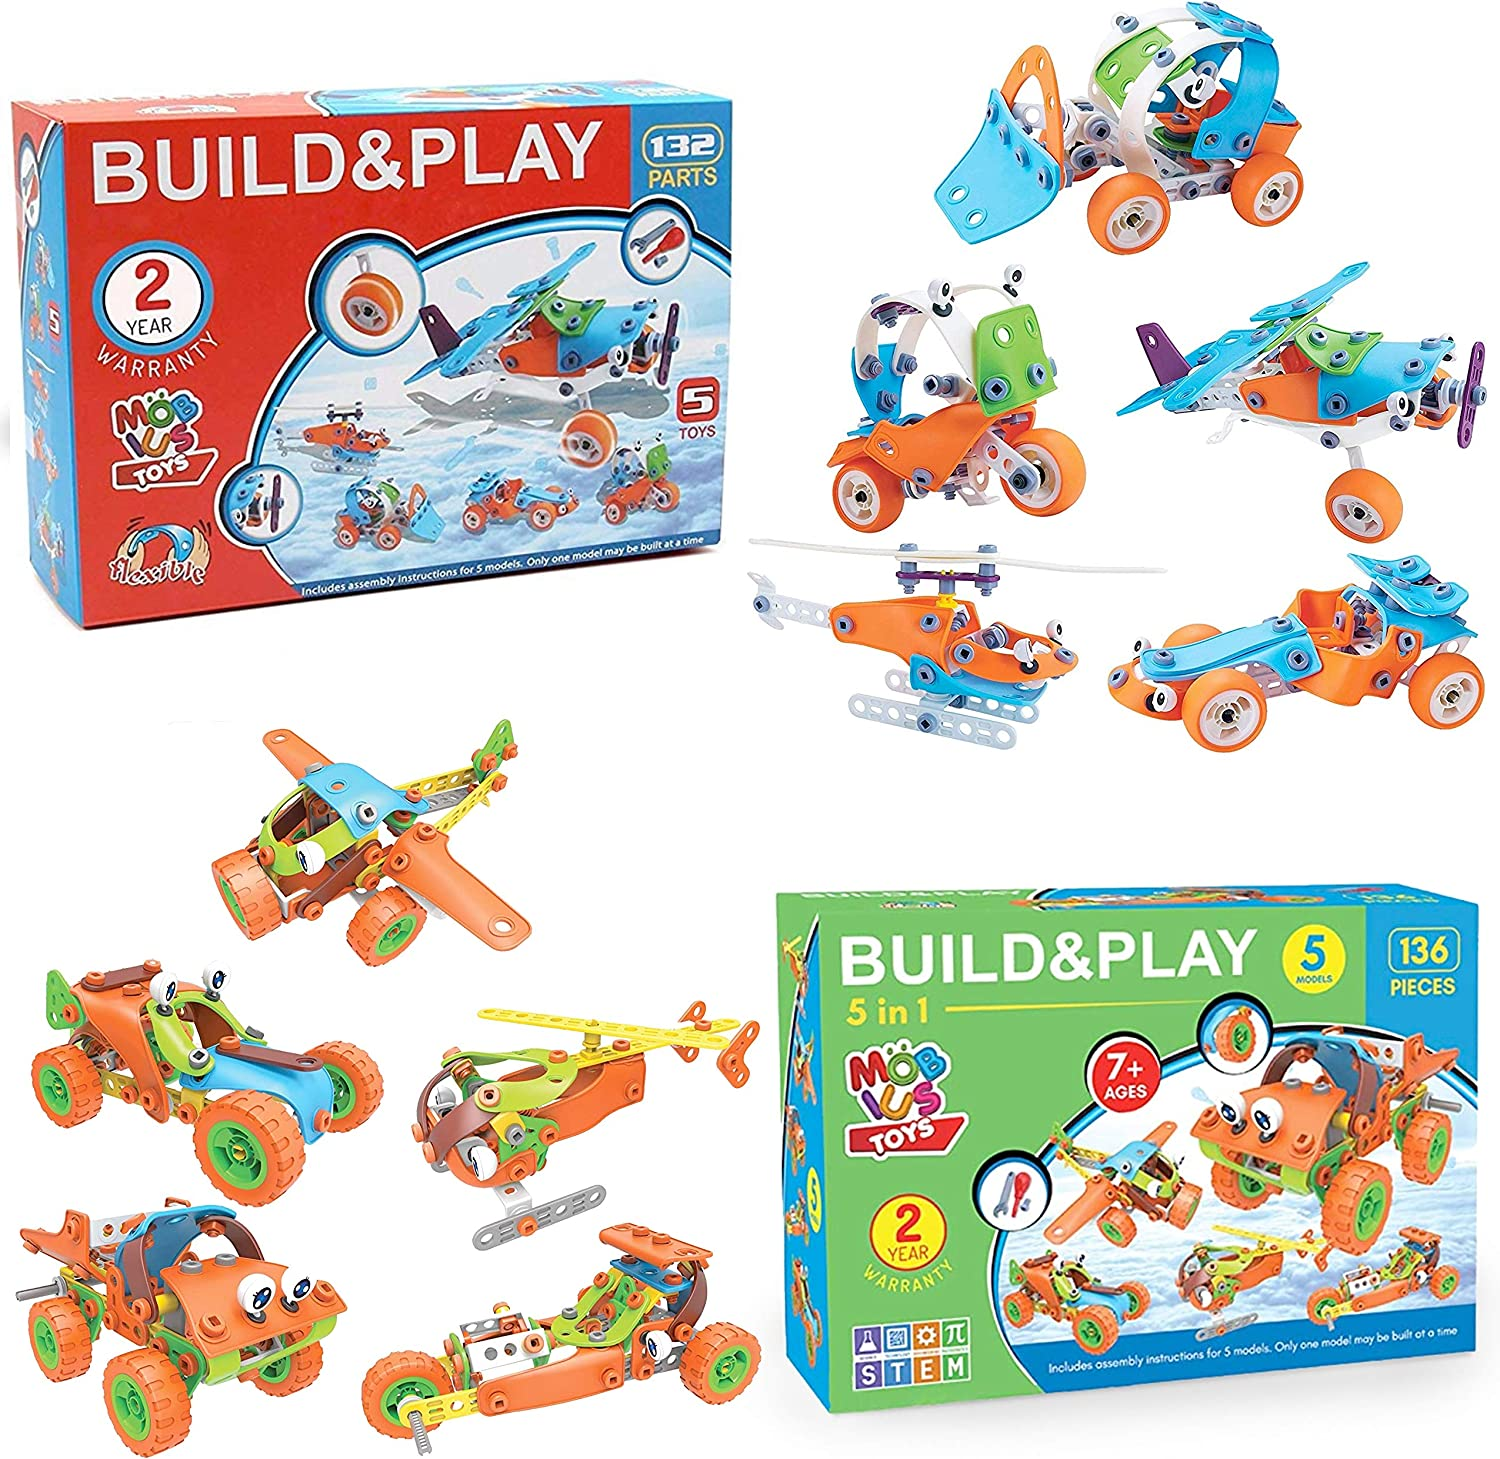 STEM Toys for Kids – Best 5-in-1 Building Projects Set for 6 7 8 9+ Year Old Boys & Girls That Love to Build – Creative Construction Stem Learning Engineering Gift for Birthday Christmas and All Times